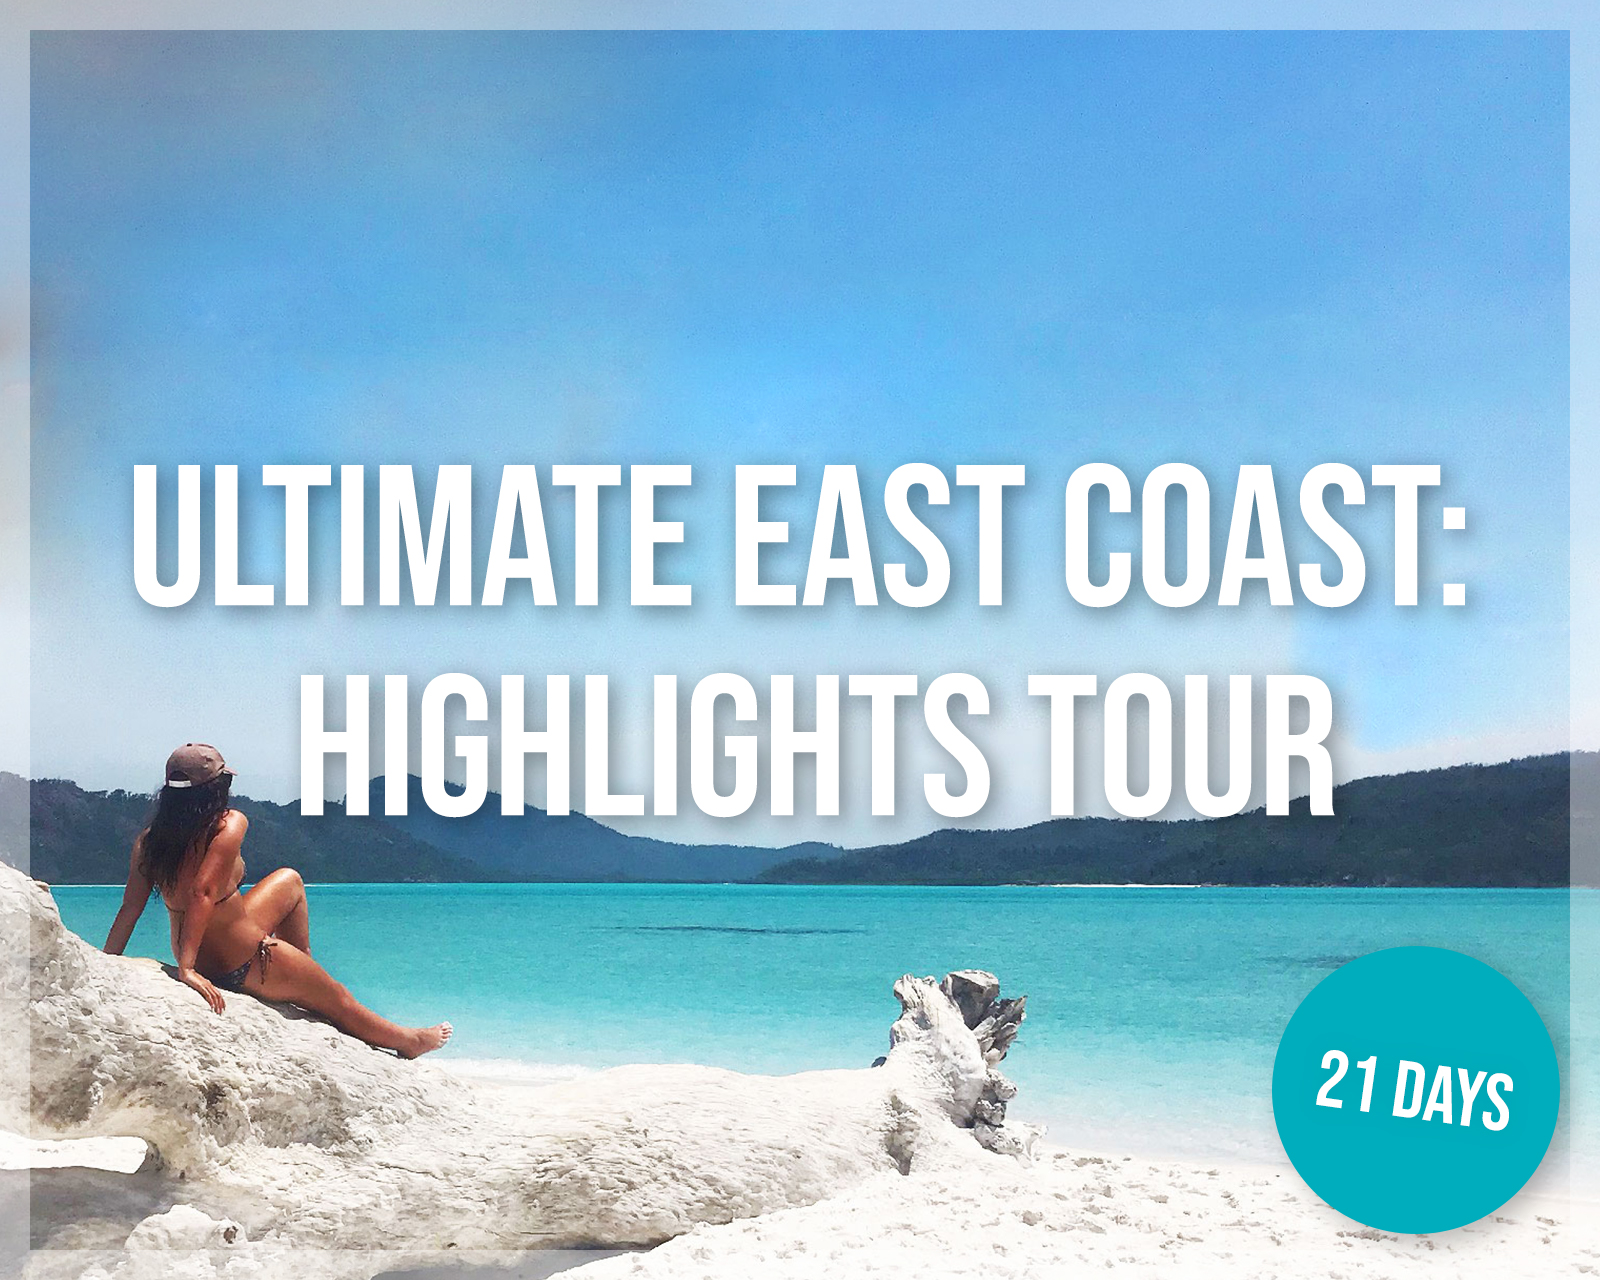 australia-tour-packages-east-coast-highlights-3-week-sydney-to-great-barrier-reef-tour